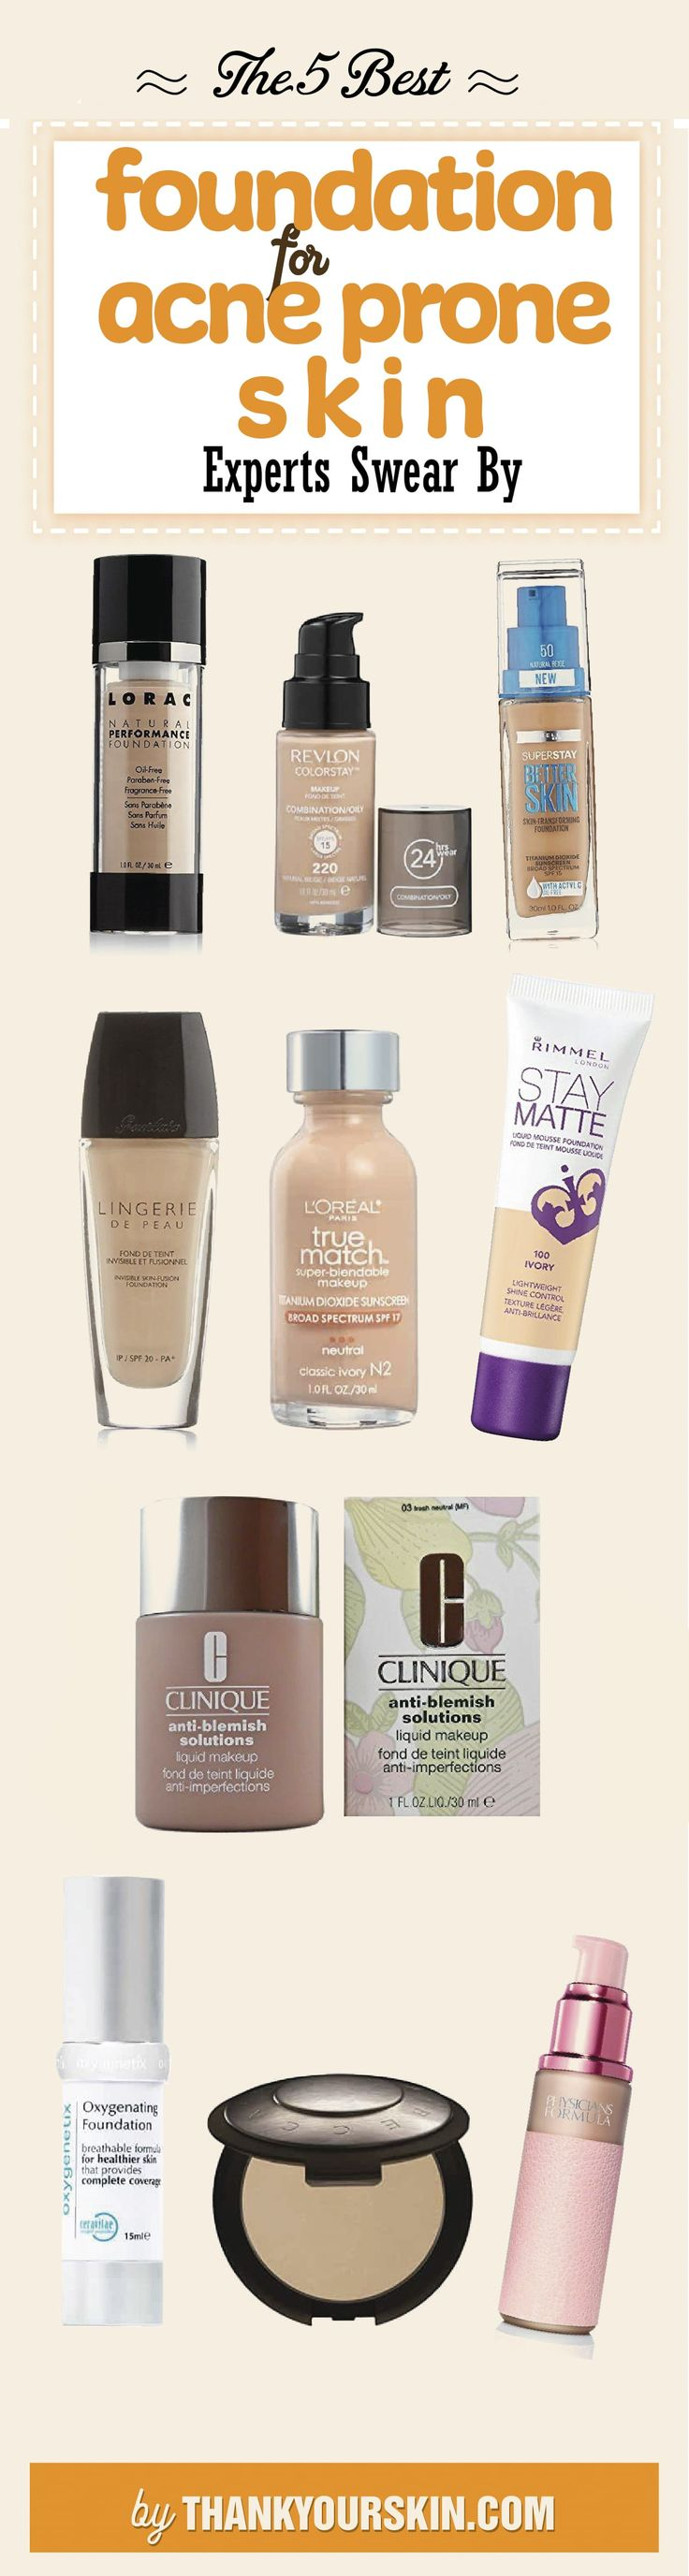 Best Foundation for acne prone skin - How to apply - tips and tricks #Foundation #Acneproneskin #ThankYourSkin